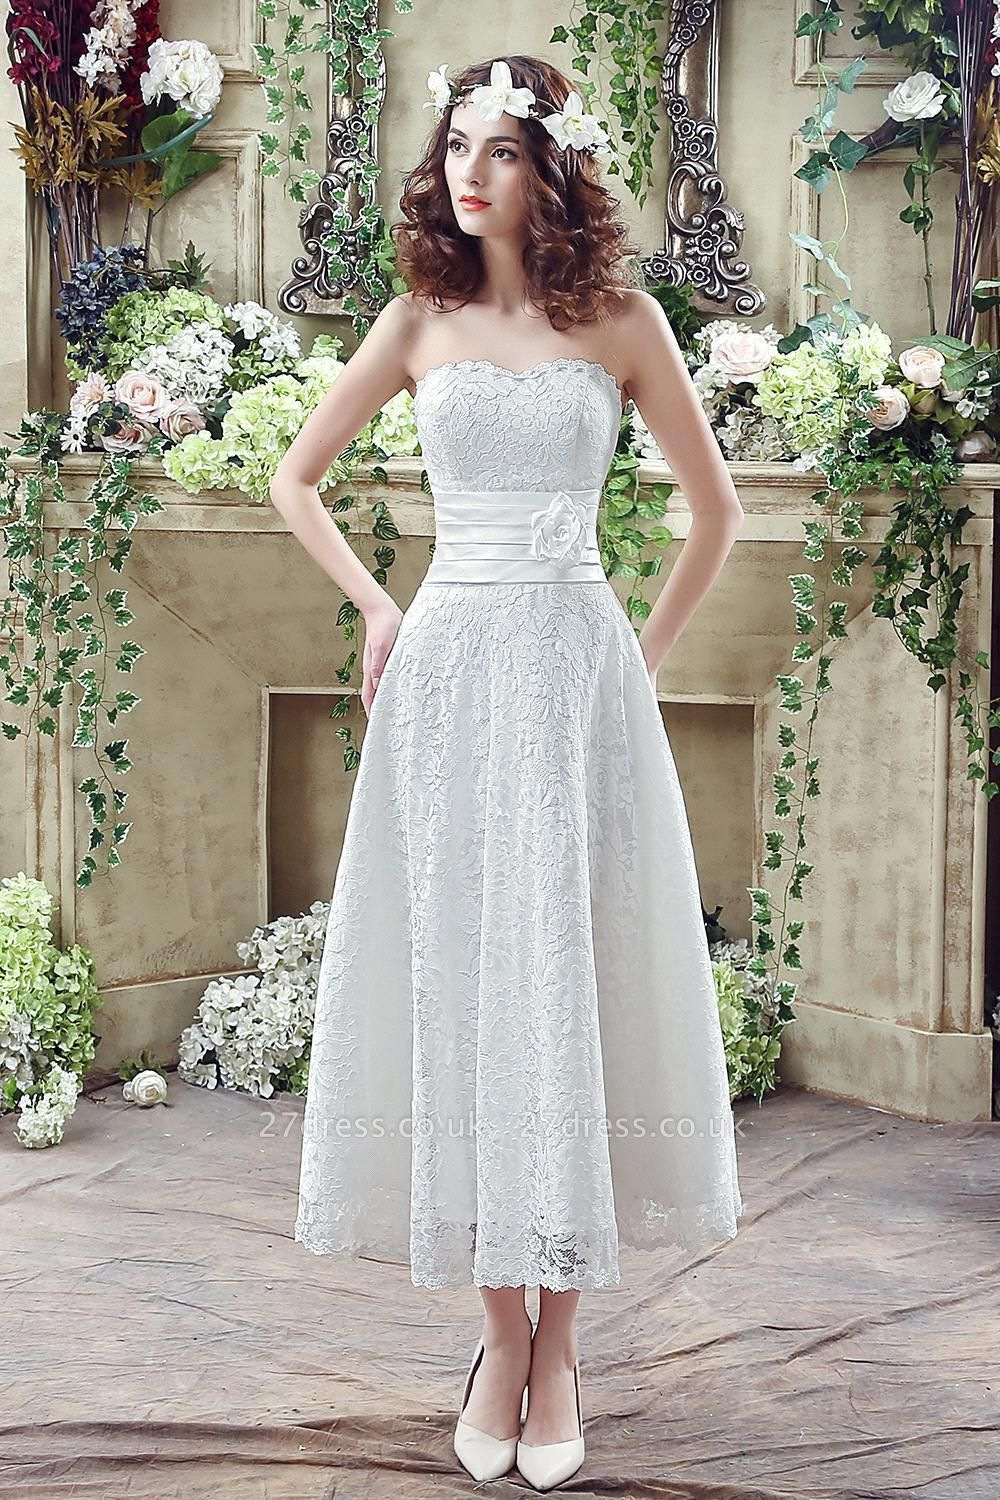 Delicate Lace Flower Strapless Wedding Dress A-line Sleeveless Lace-up